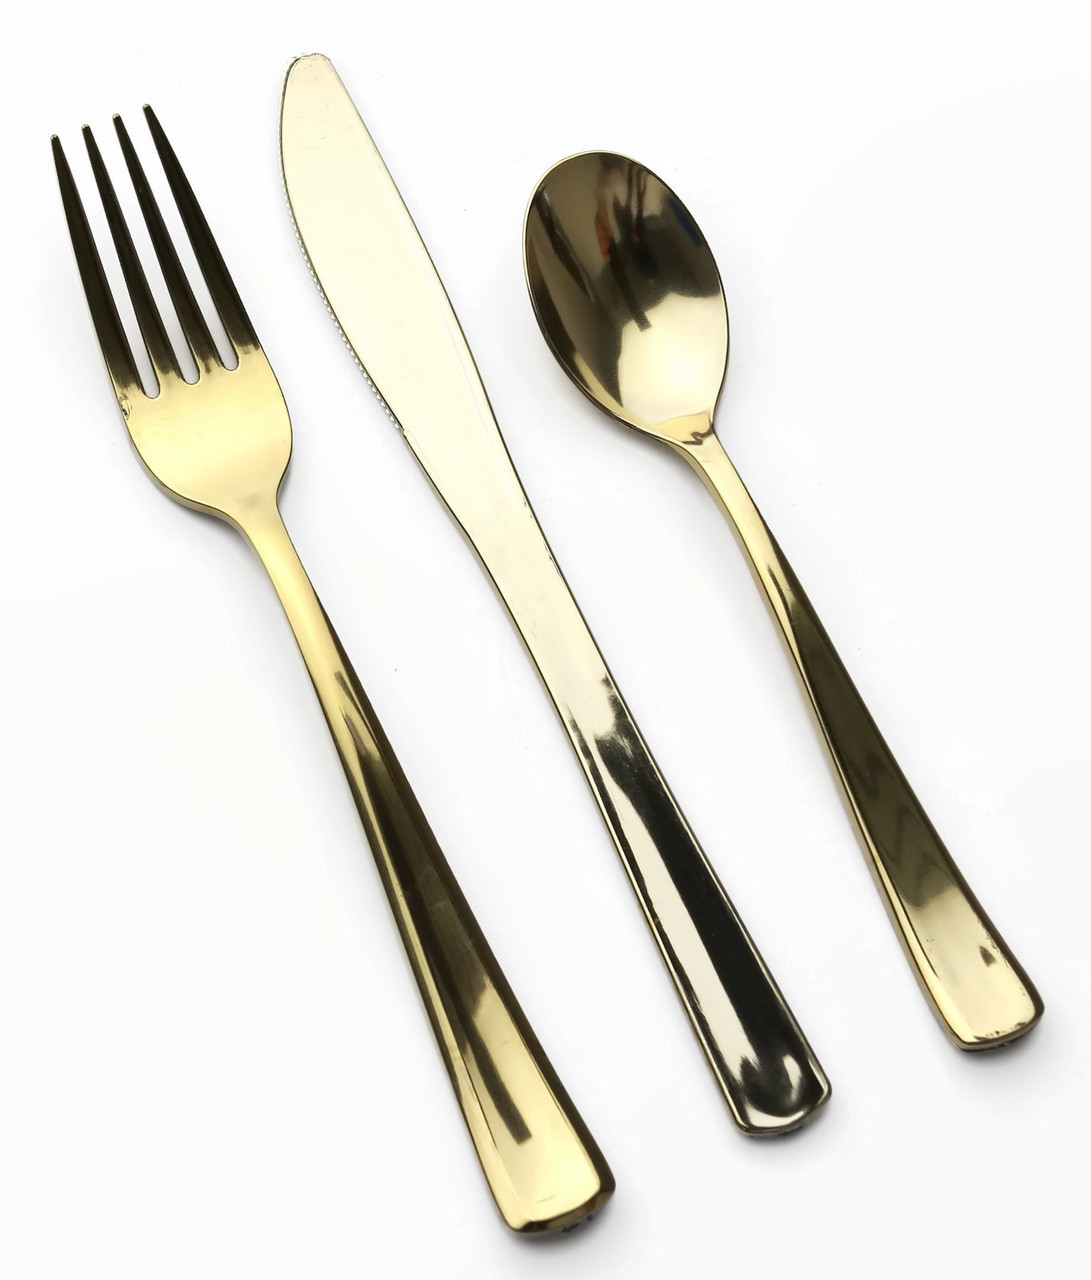 Brilliant gold plastic silverware with glitters gold plastic silverware for serverware ideas